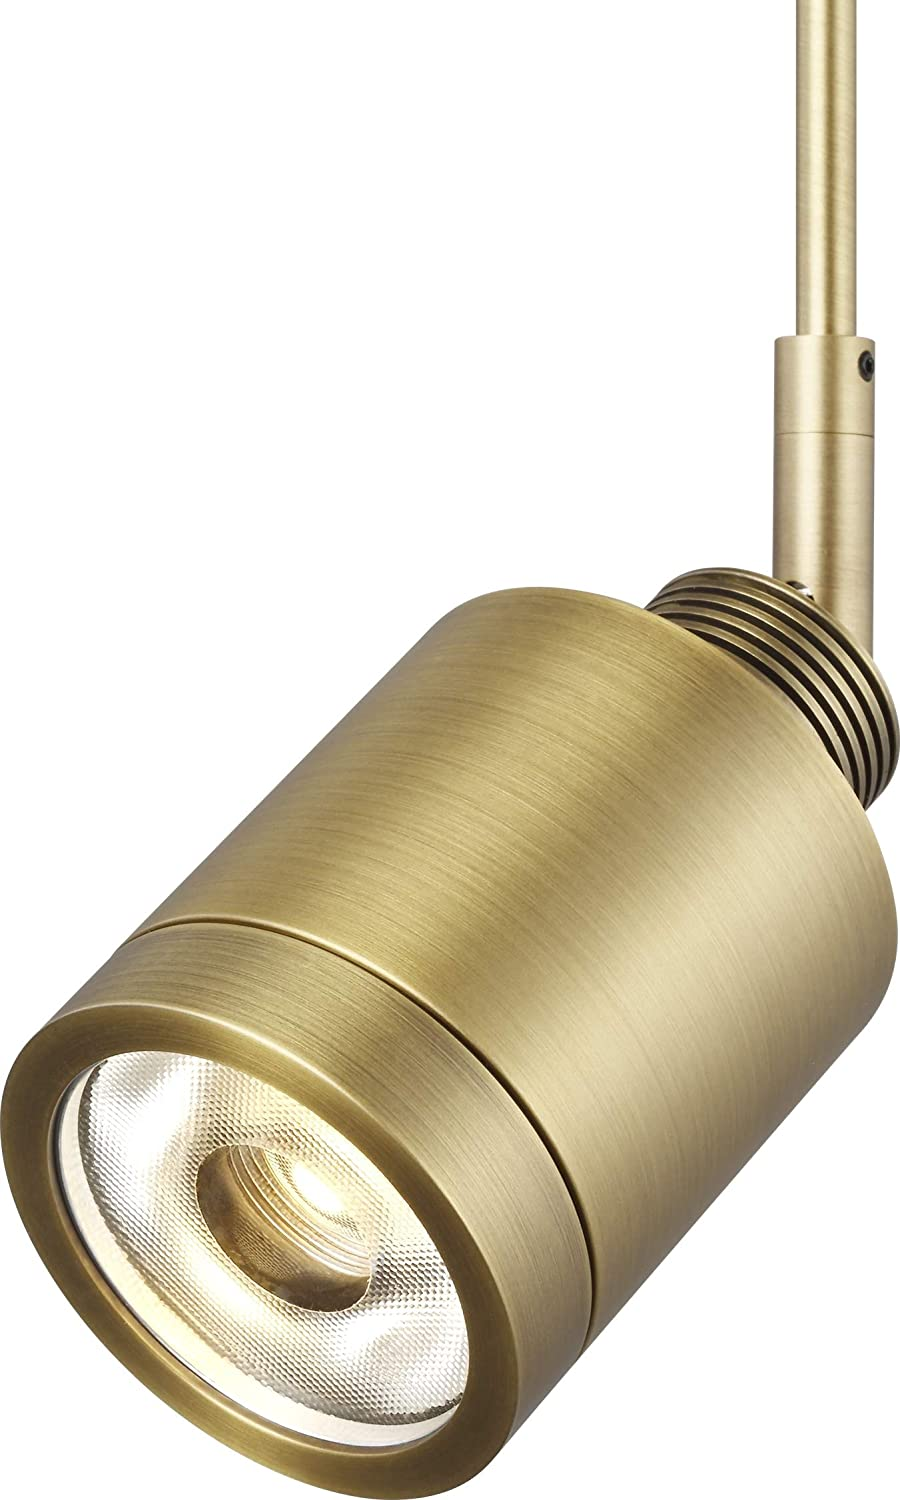 Tech Long-awaited Discount is also underway Lighting 700FJTLML6R-LED930 Tellium Low-Voltage Hea Track -